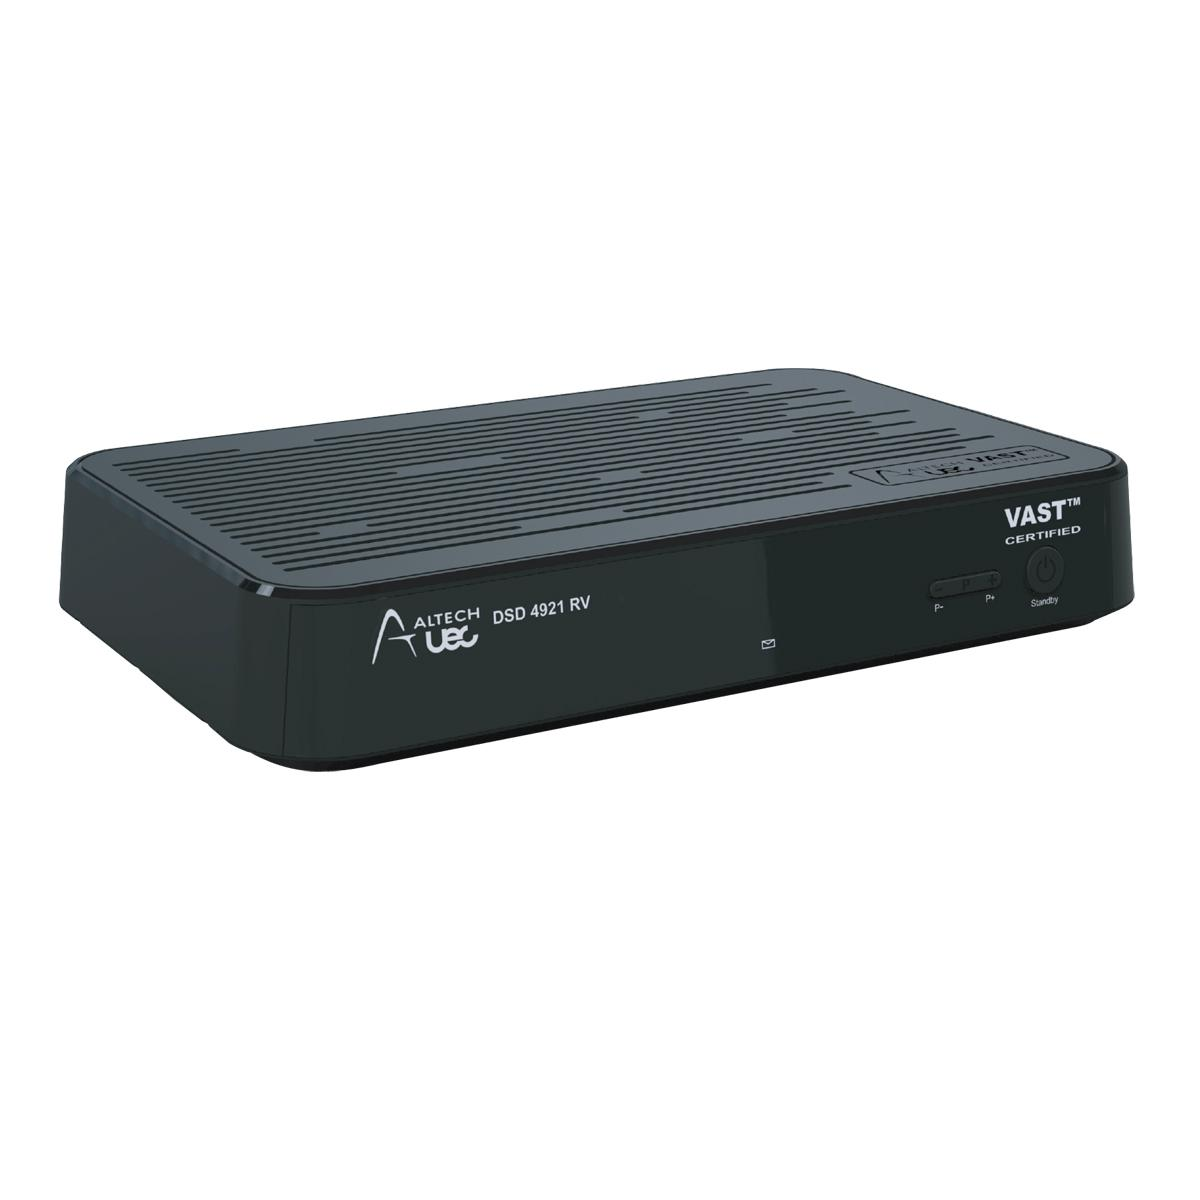 Altech Twin Tuner VAST HD Receiver